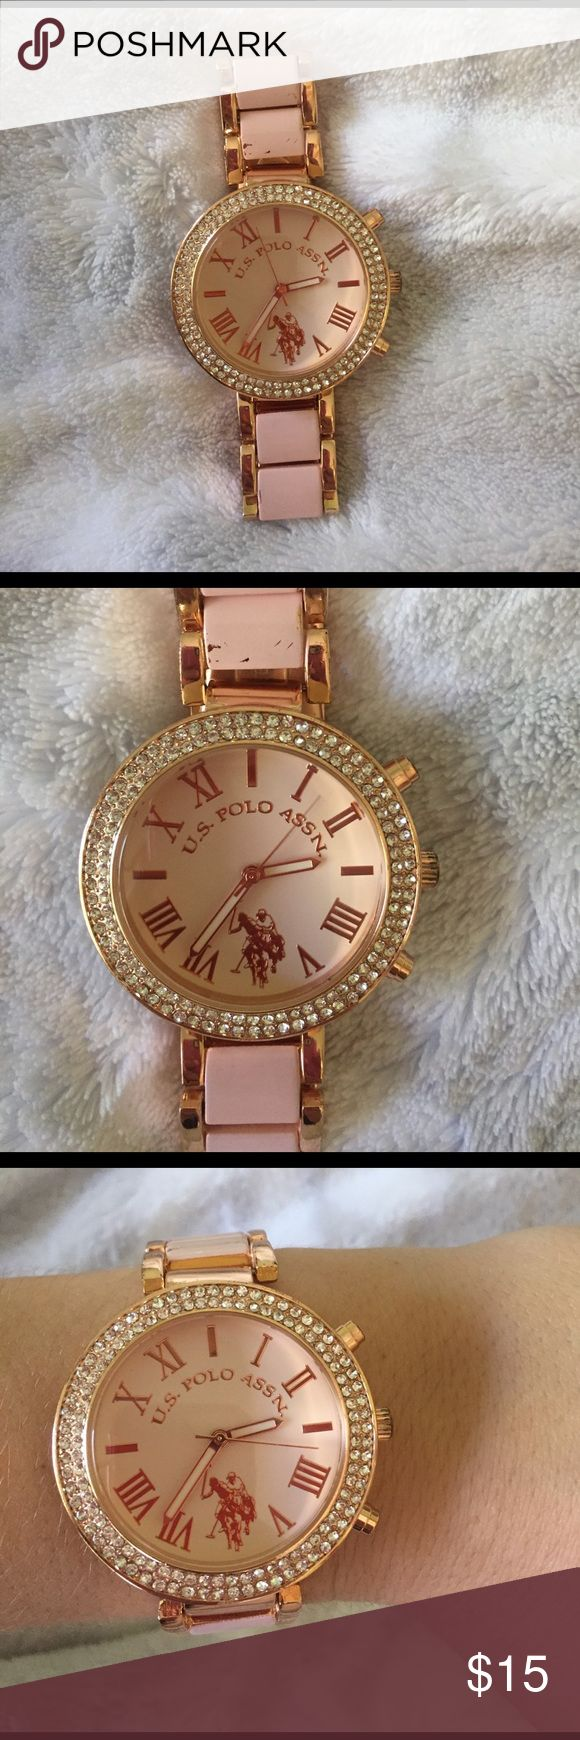 U.S. Polo Watch U.S. Polo Watch! Super cute! Perfect for any occasion. Rose gold and light purple/pink colored. Rhinestones around the face of the Watch and Roman numerals as the numbers. Worn a few times and there are some scratches if looked at closely. U.S. Polo Assn. Accessories Watches